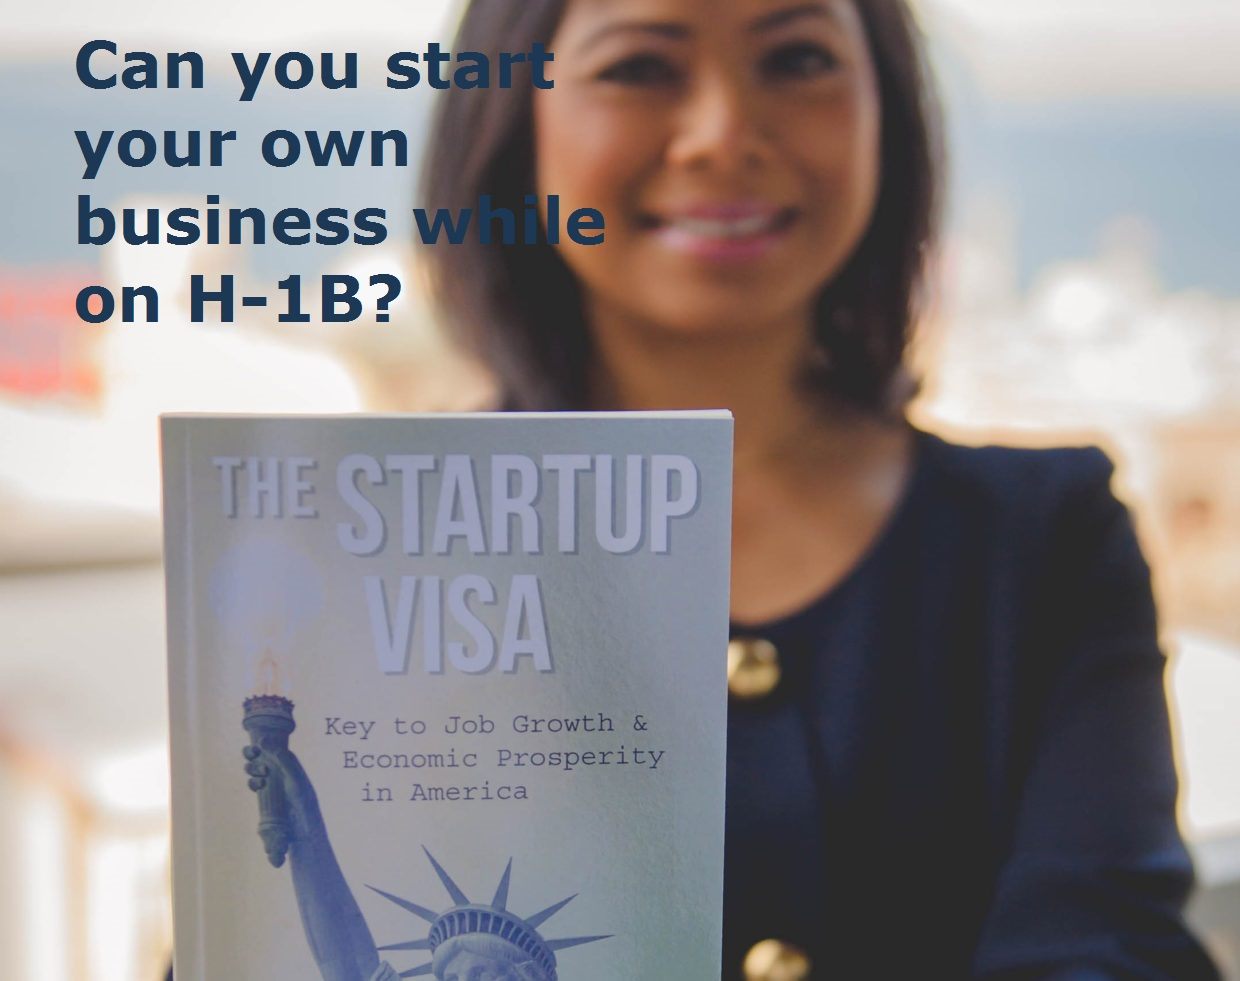 Can you start your own business while on H-1B?